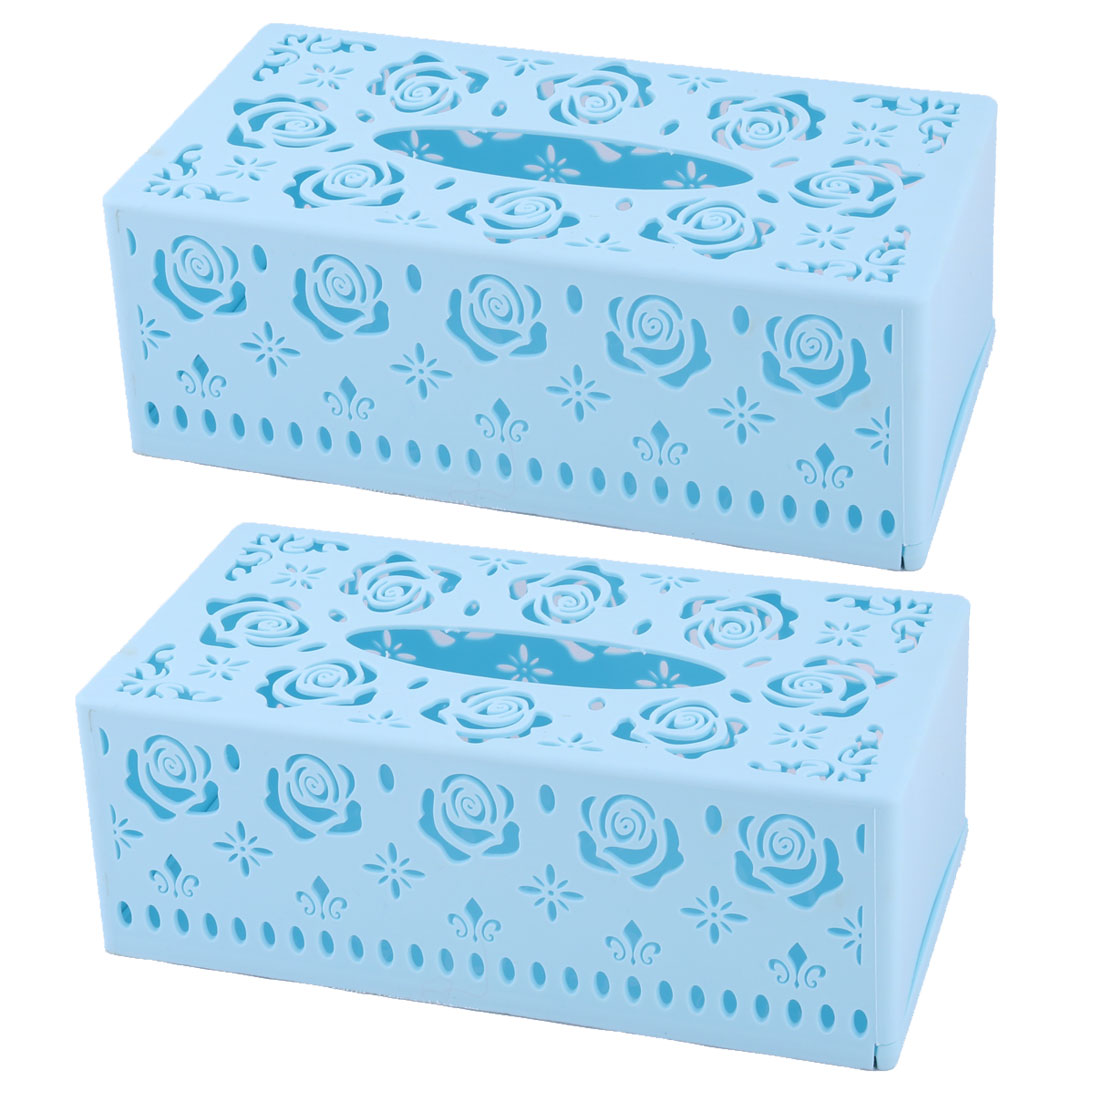 Uxcell Home Plastic Rectangle Hollow Out Design Tissue Box Case Holder Sky Blue 2pcs